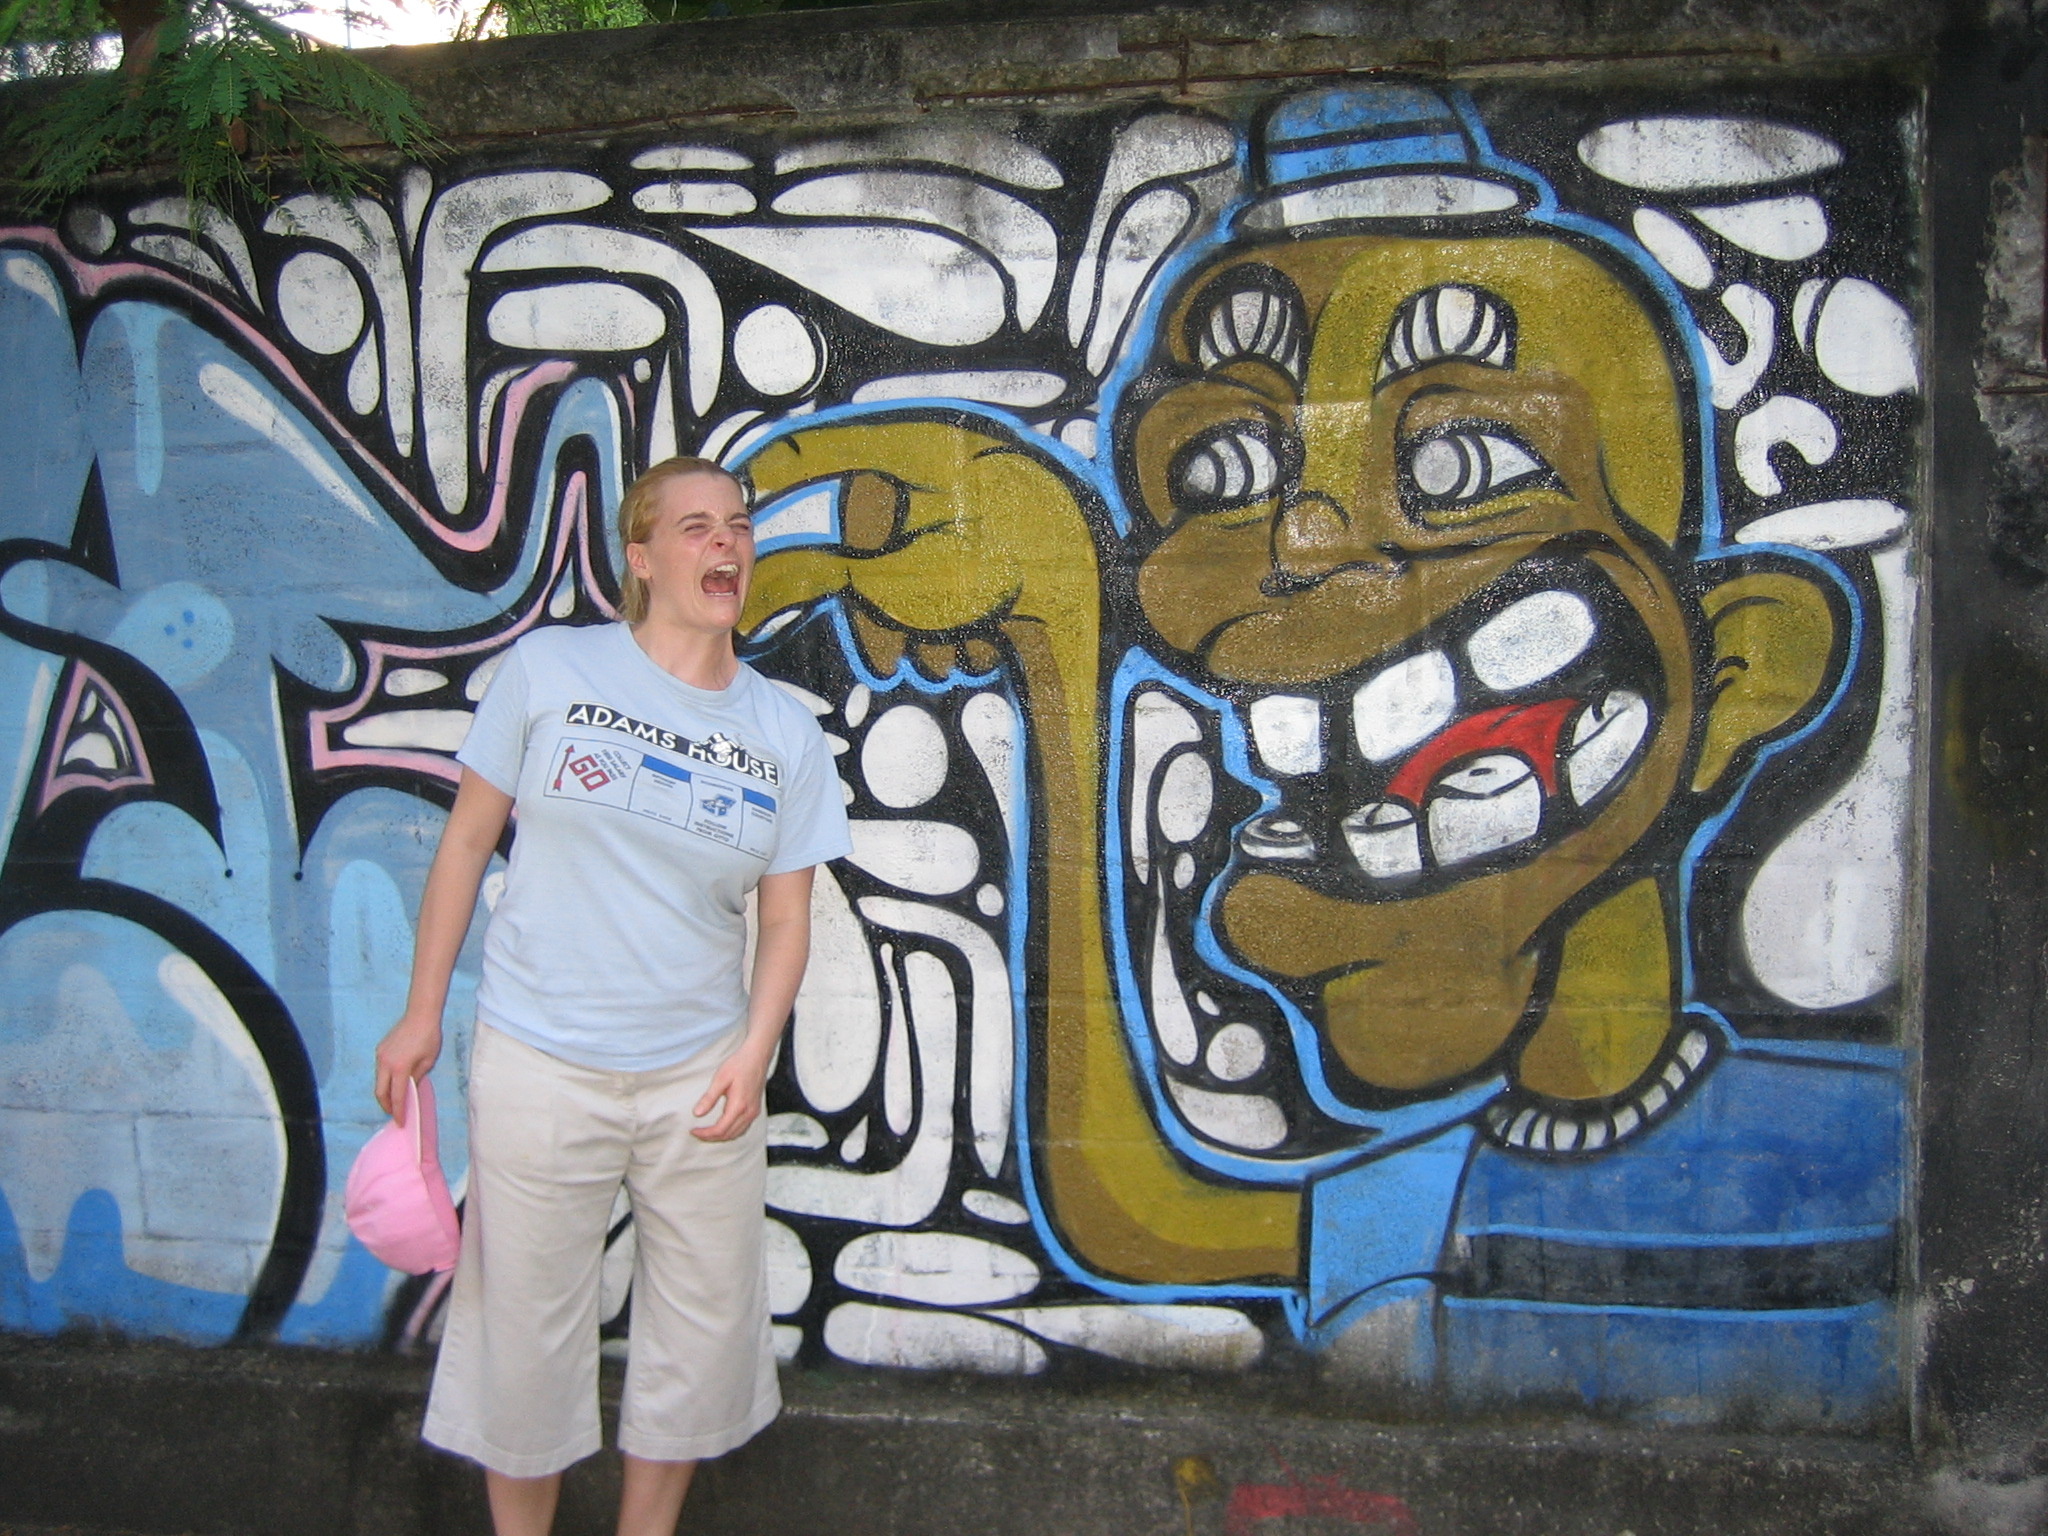 They have awesome graffiti in Rio.